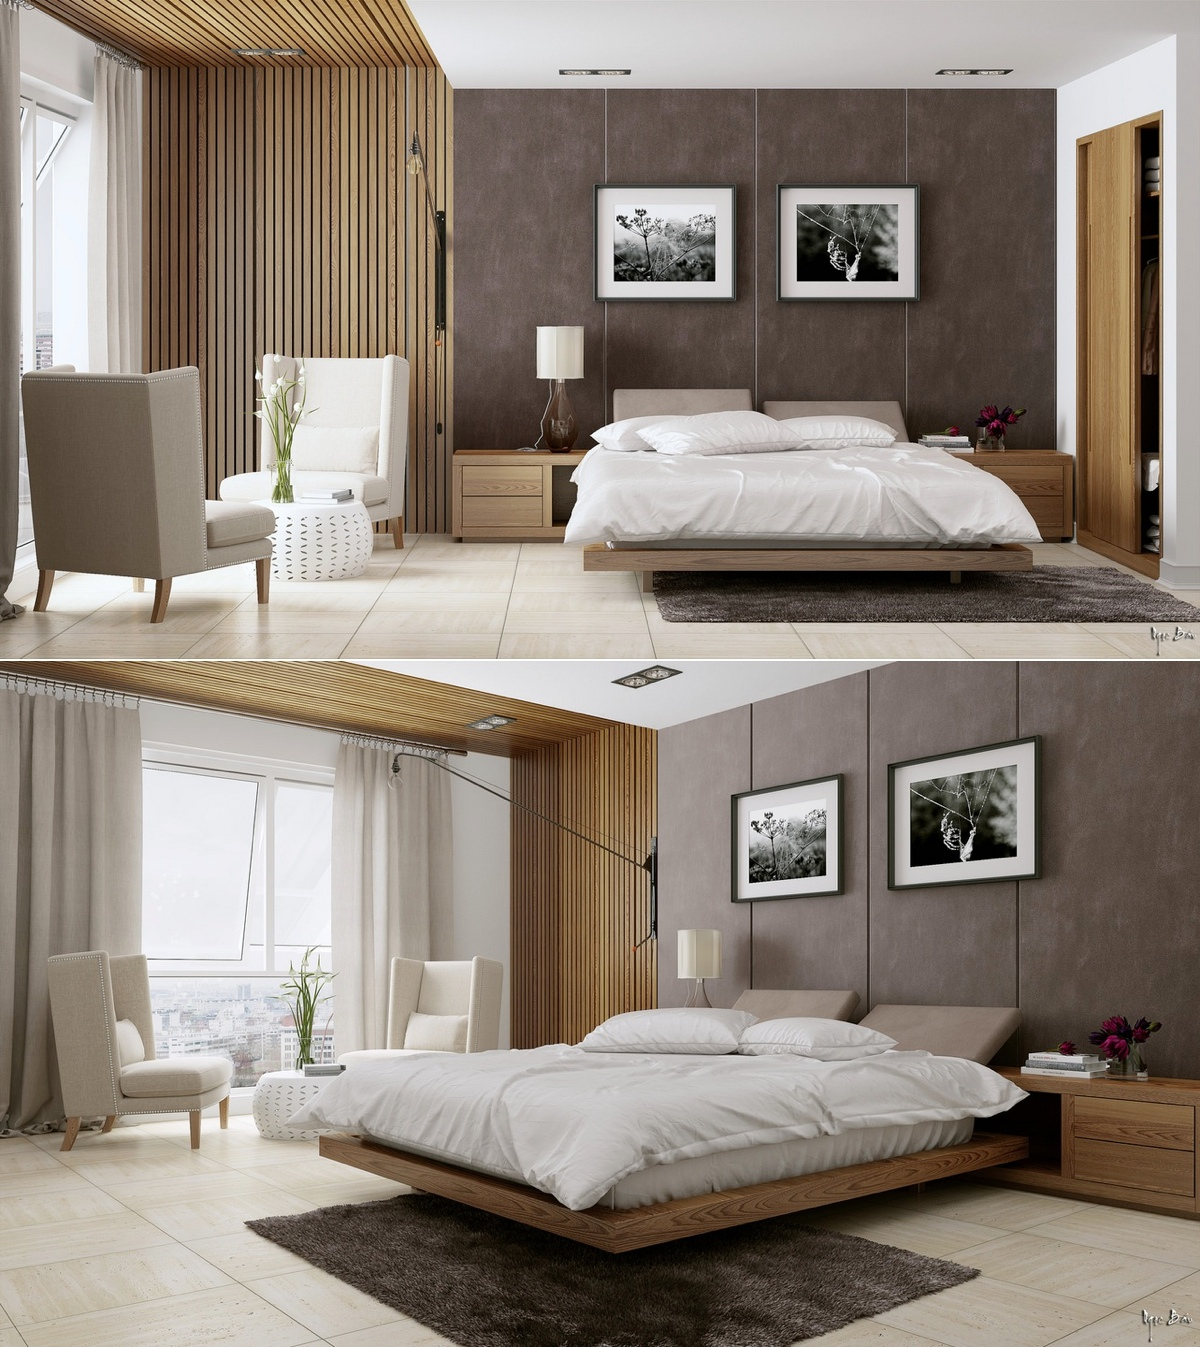 Romantic modern bedroom interior design ideas for Interior design images bedroom